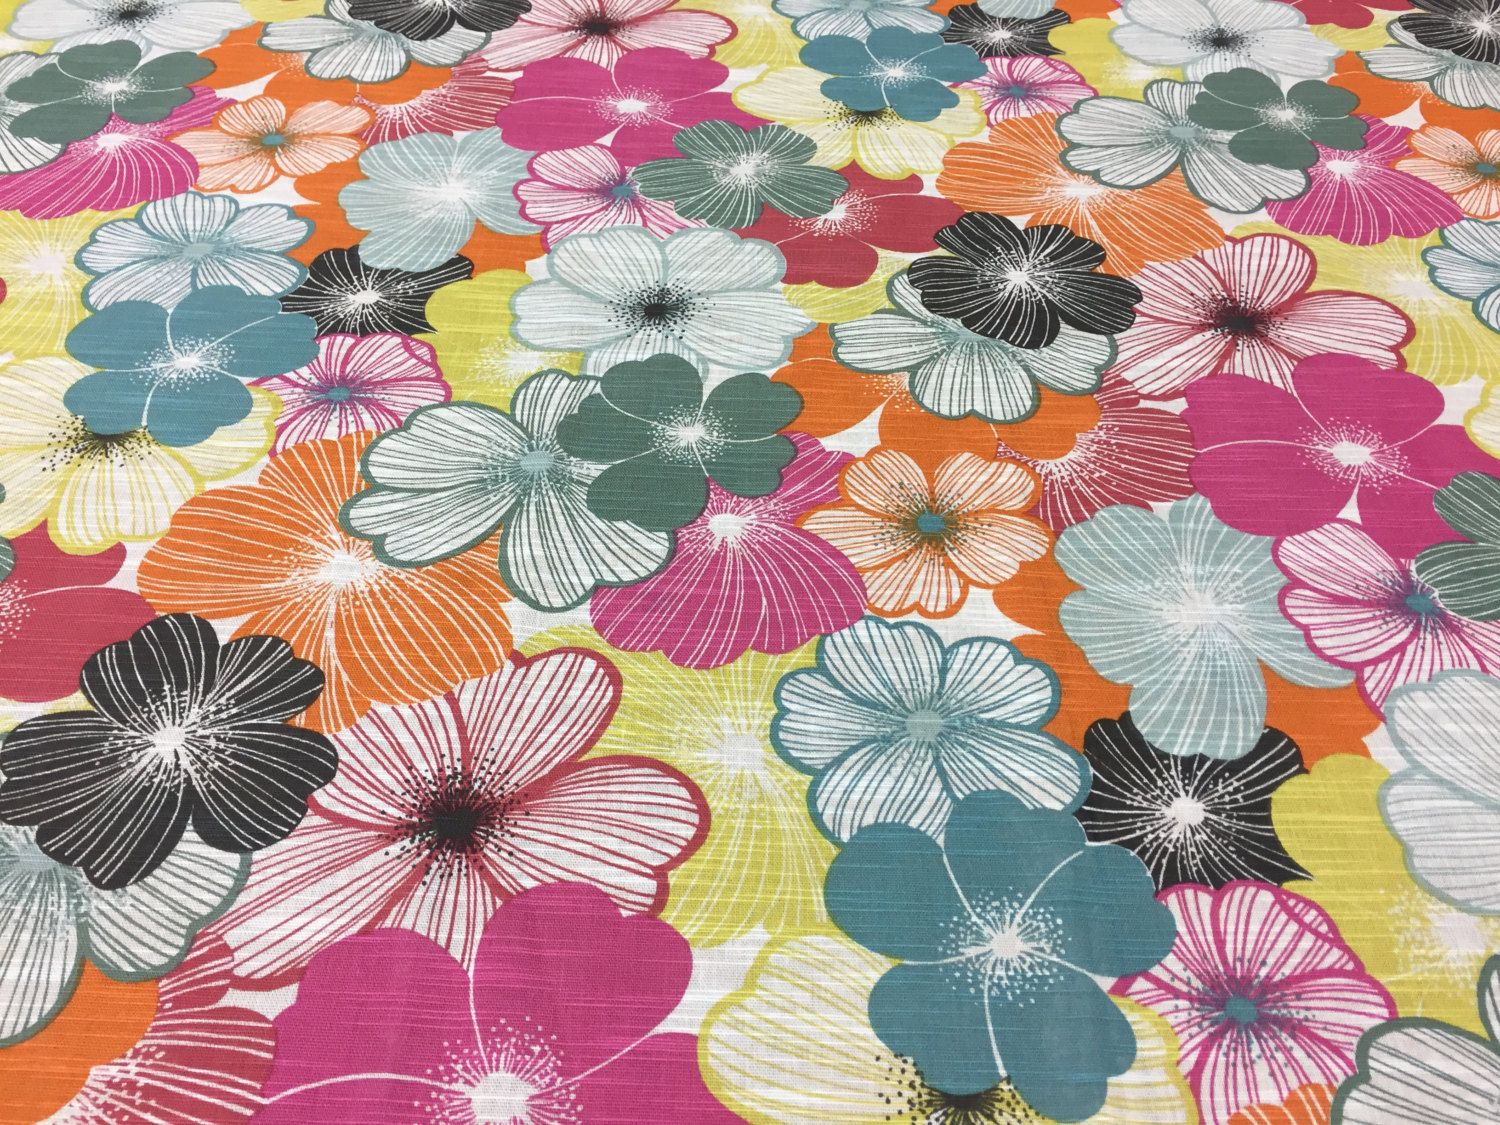 Colorful Tablecloth Spring Tablecloth Tablecloth With Gray Pink Yellow Orange Black Striped Flower Modern Tablecloth Great Gift Pink Yellow Modern Tablecloths Floral Fabric